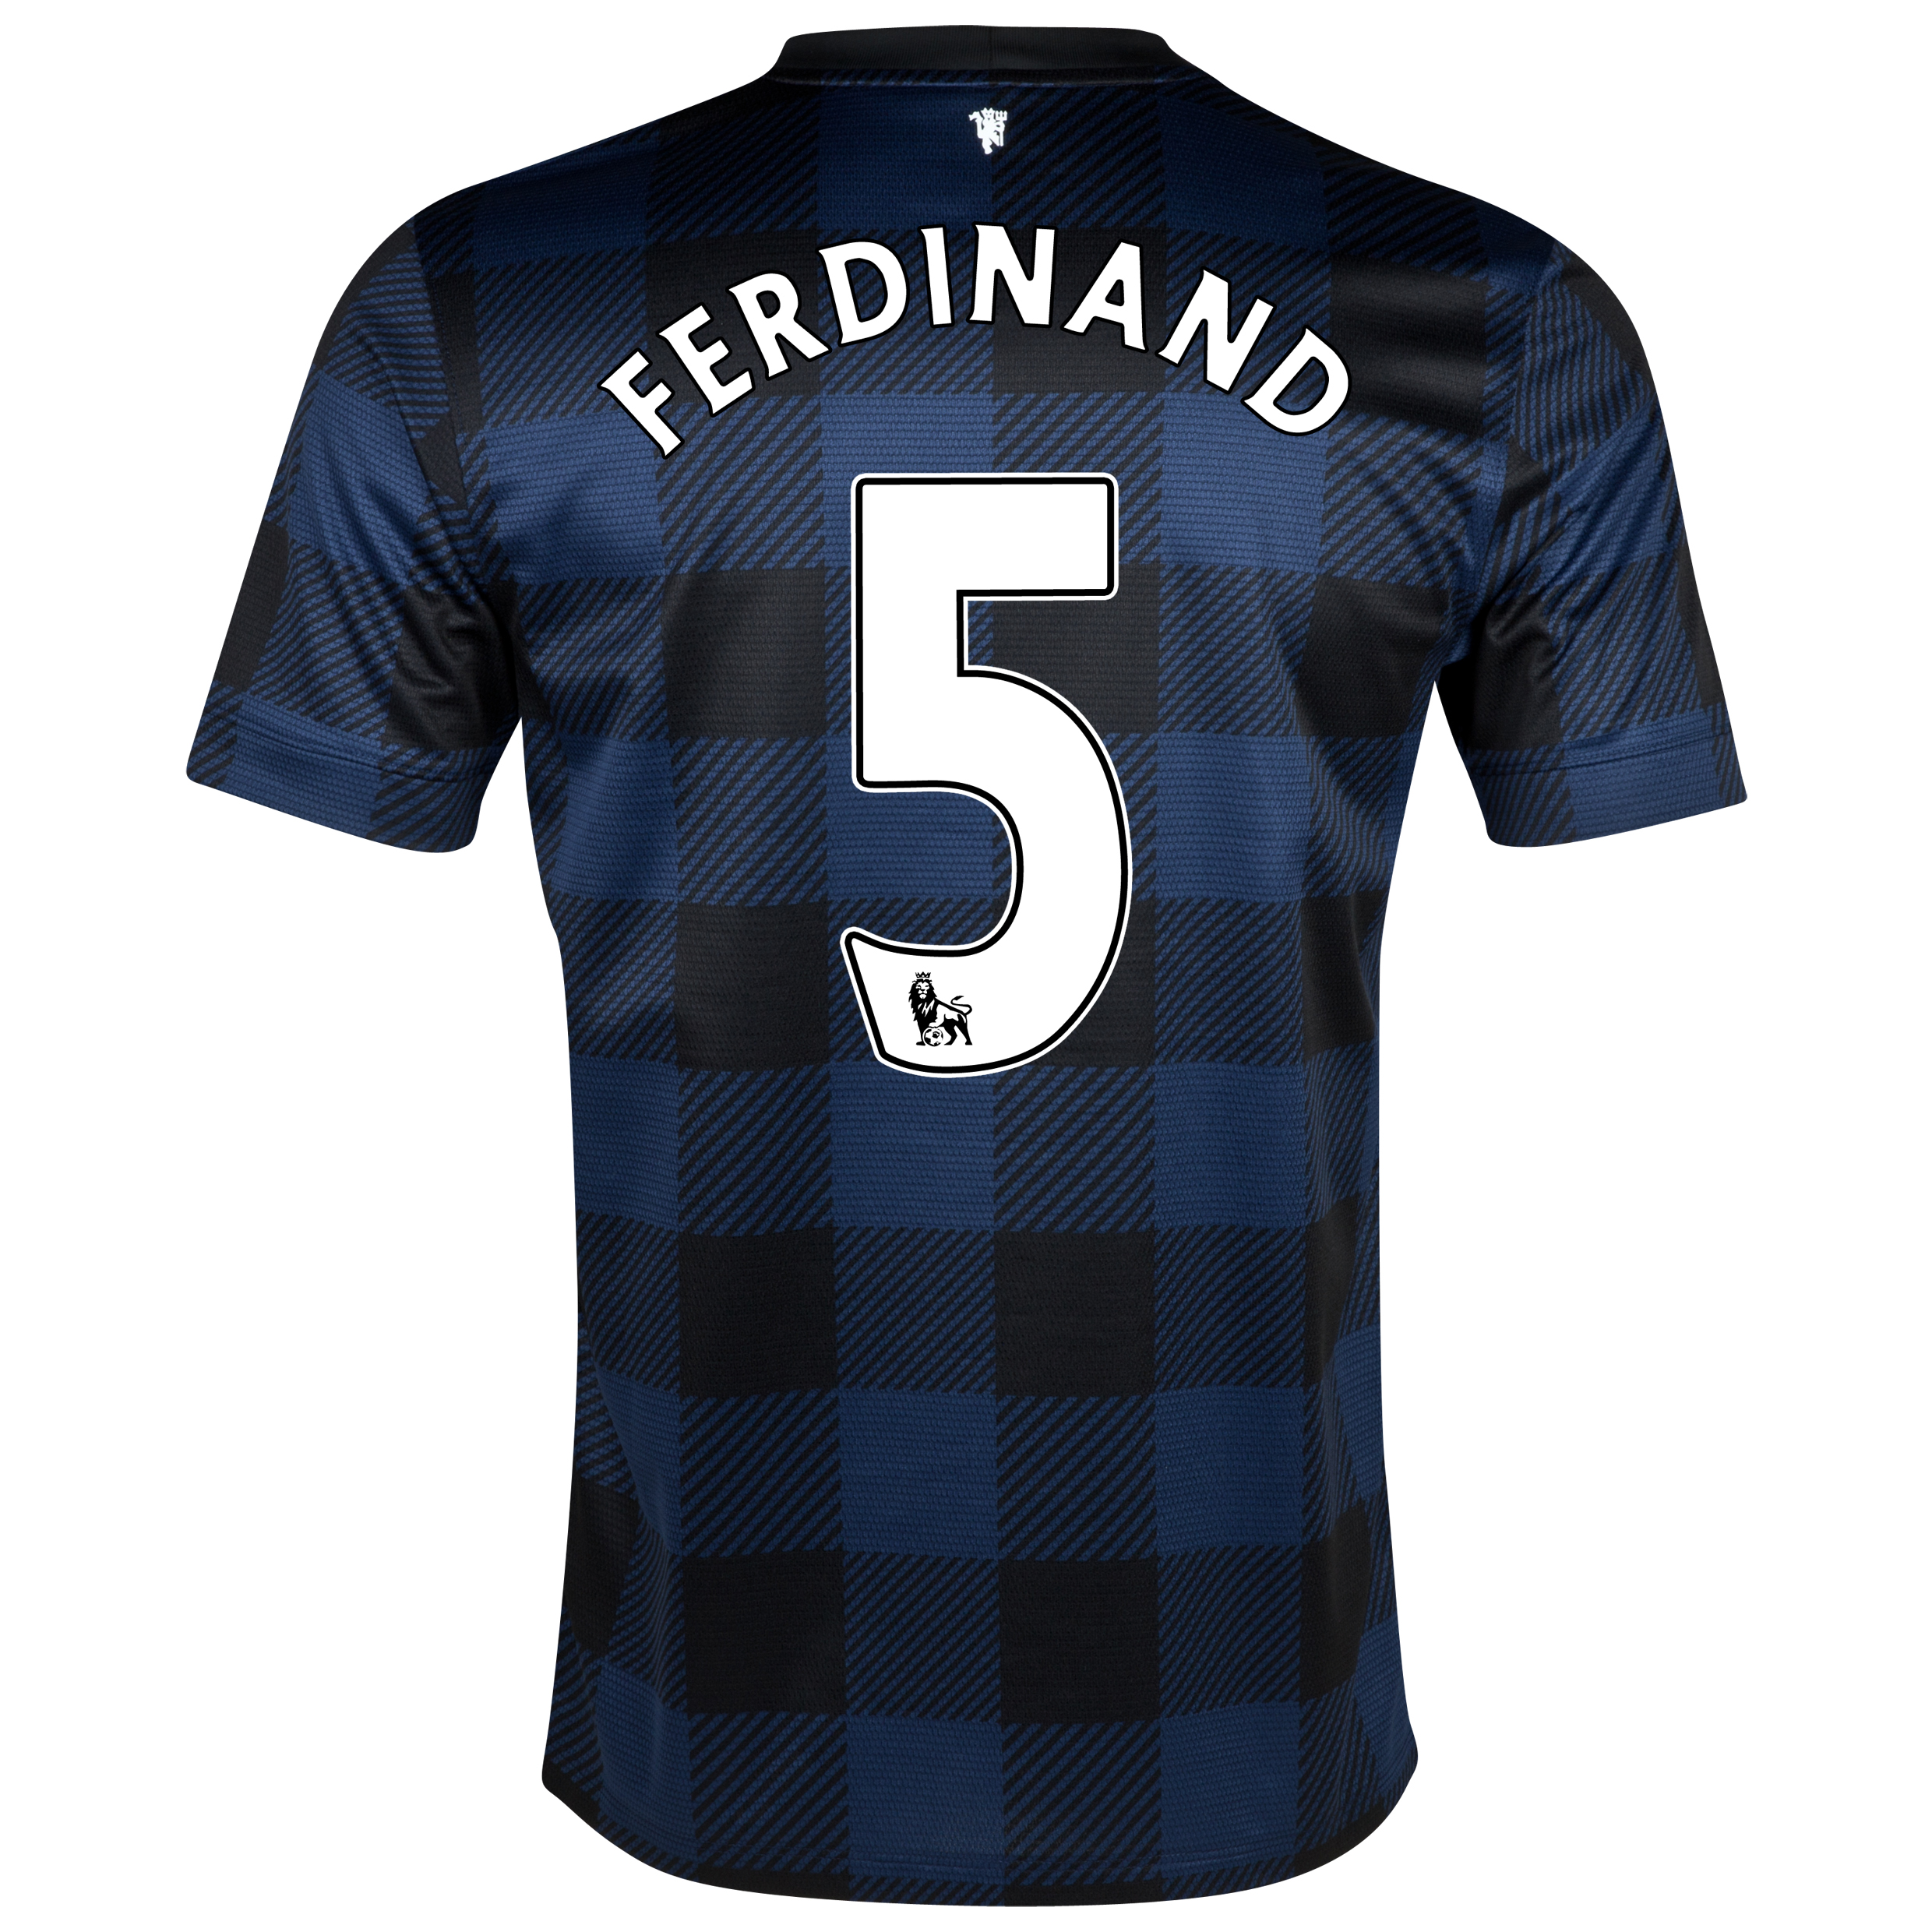 Manchester United Away Shirt 2013/14 with Ferdinand 5 printing